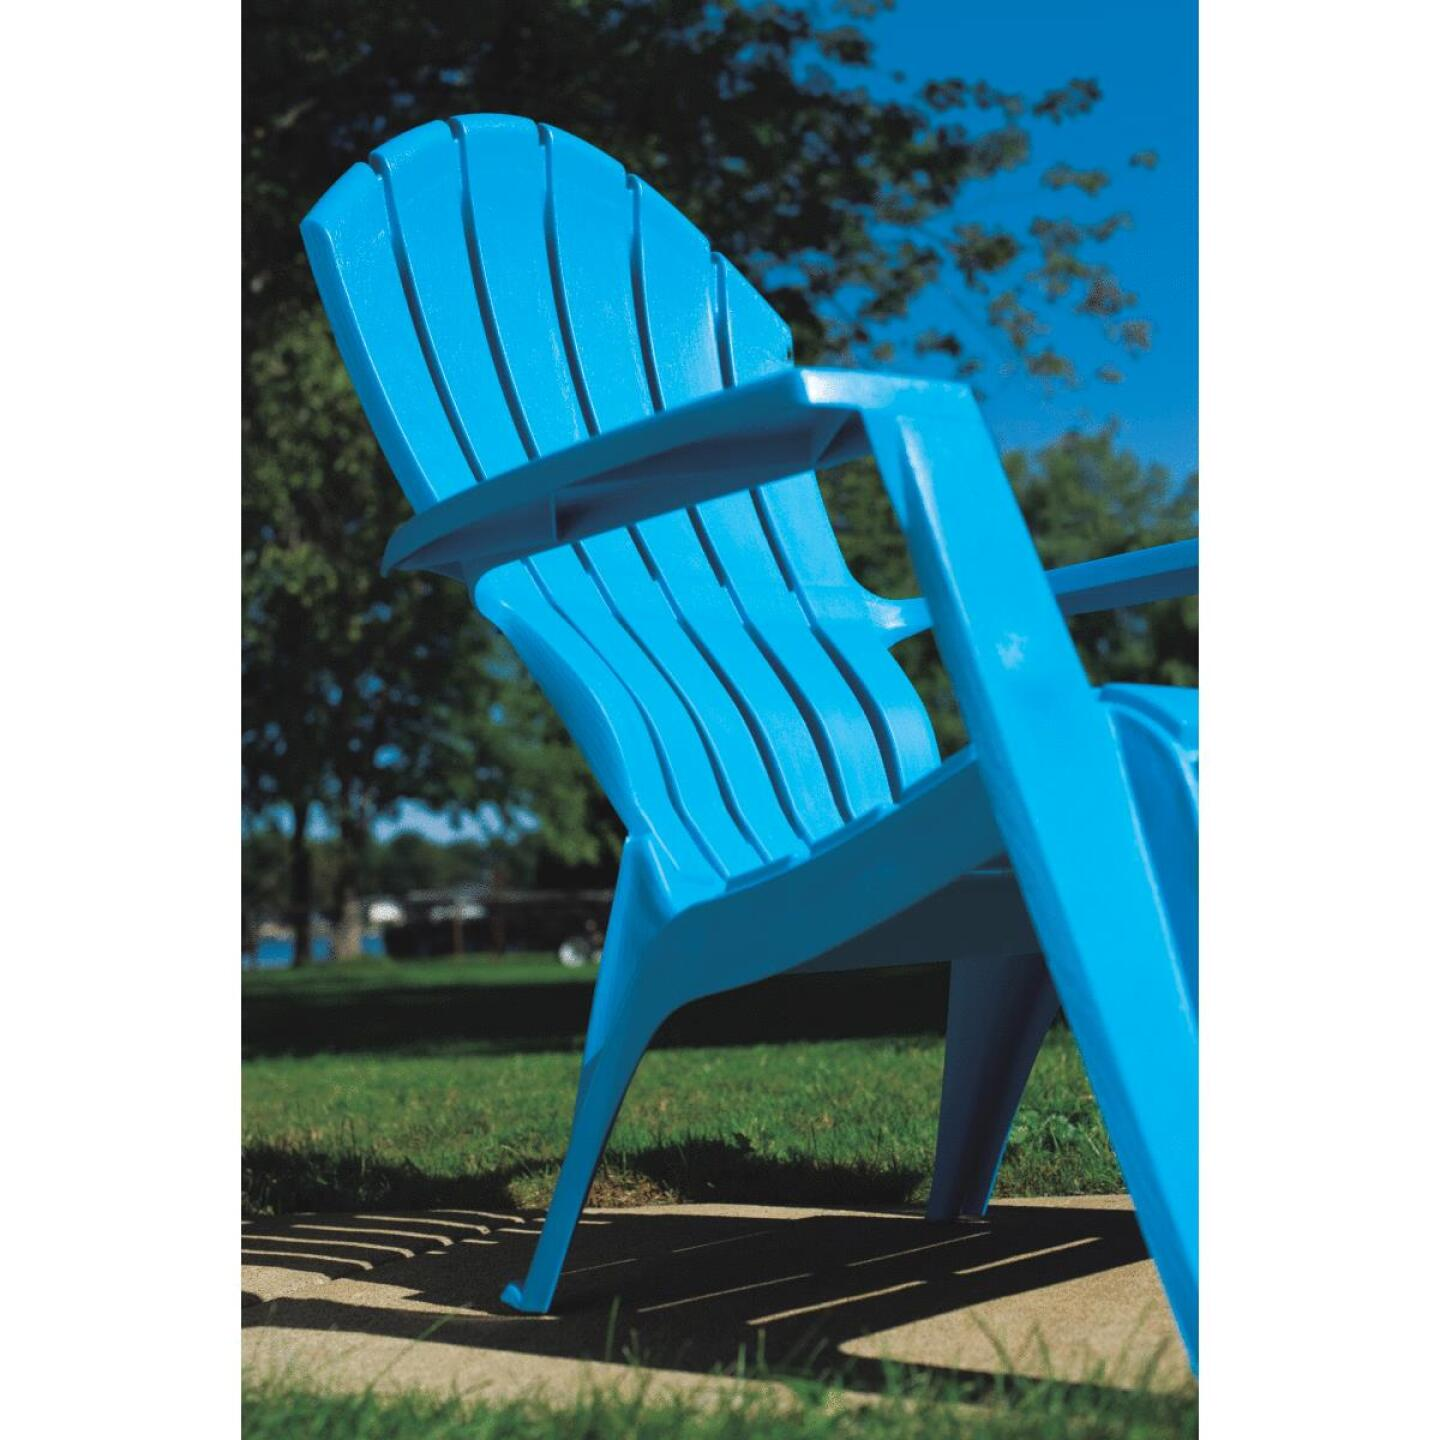 Adams RealComfort Pool Blue Resin Adirondack Chair Image 3